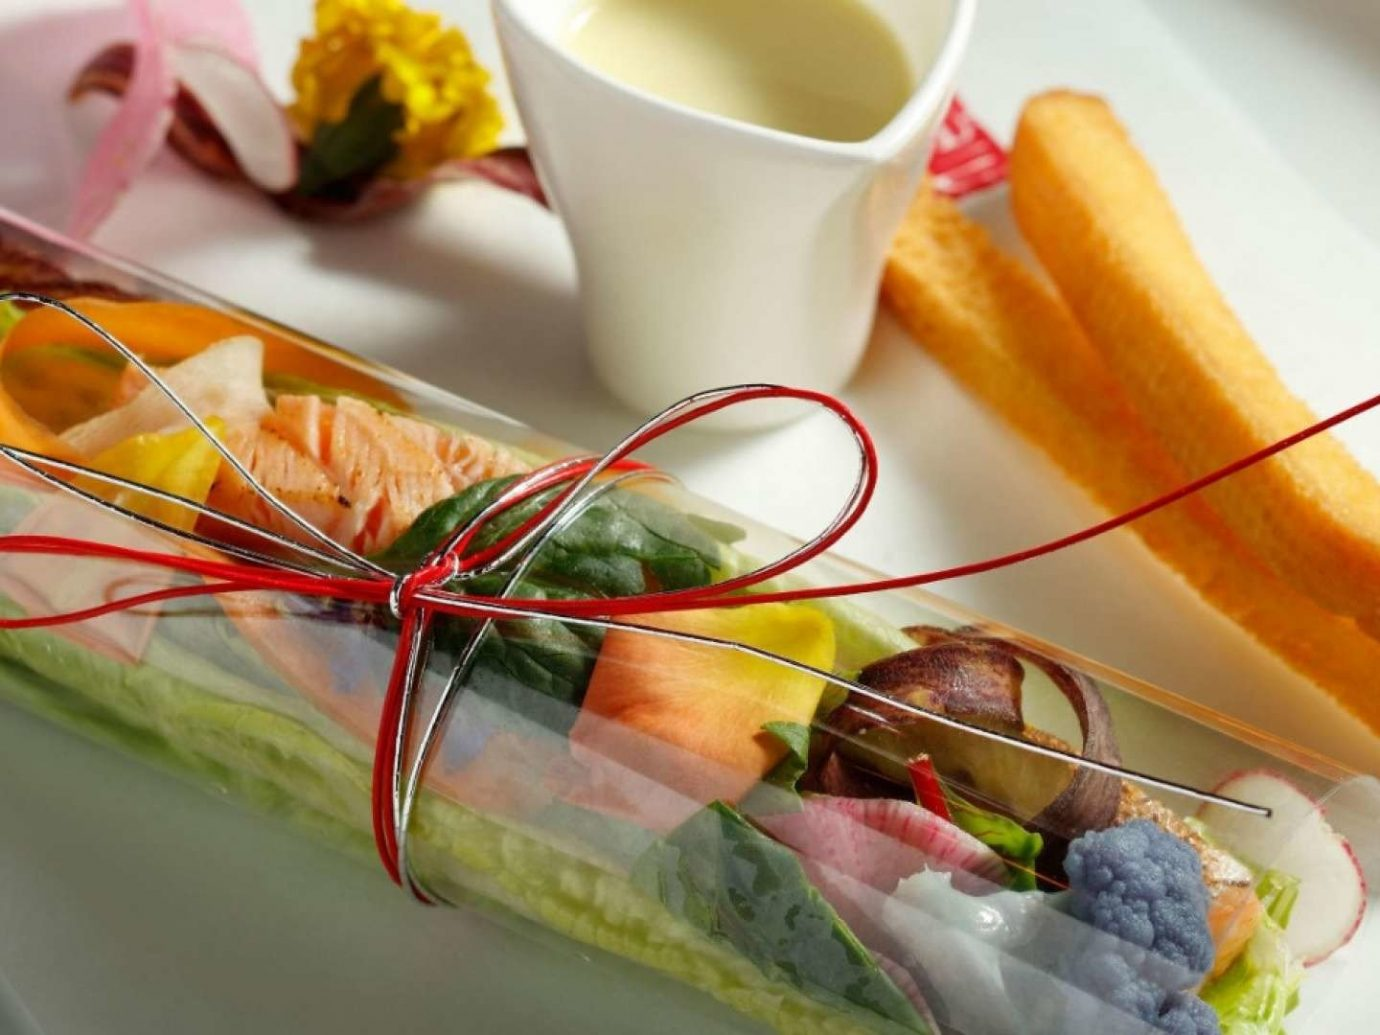 Food + Drink food table plate dish indoor meal hors d oeuvre lunch cuisine breakfast fruit brunch produce sense dessert chinese food